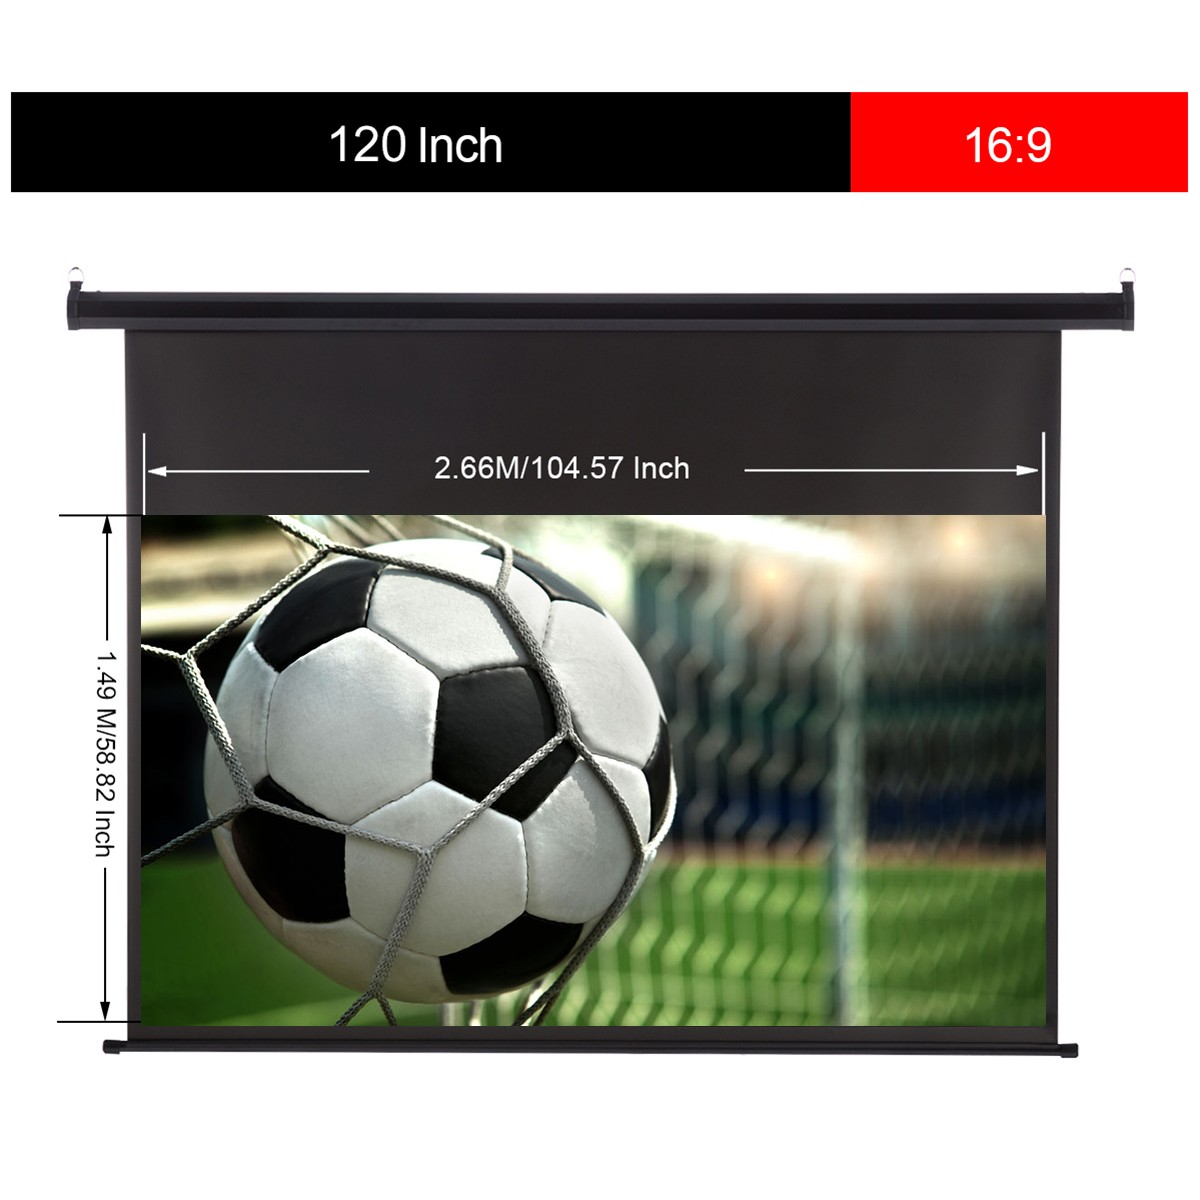 Excelvan 120-inch 16:9 1.2 Gain Wall Ceiling Electric Motorized HD Projector Screen with Remote Control Up and Down for Home and Office- Black EU